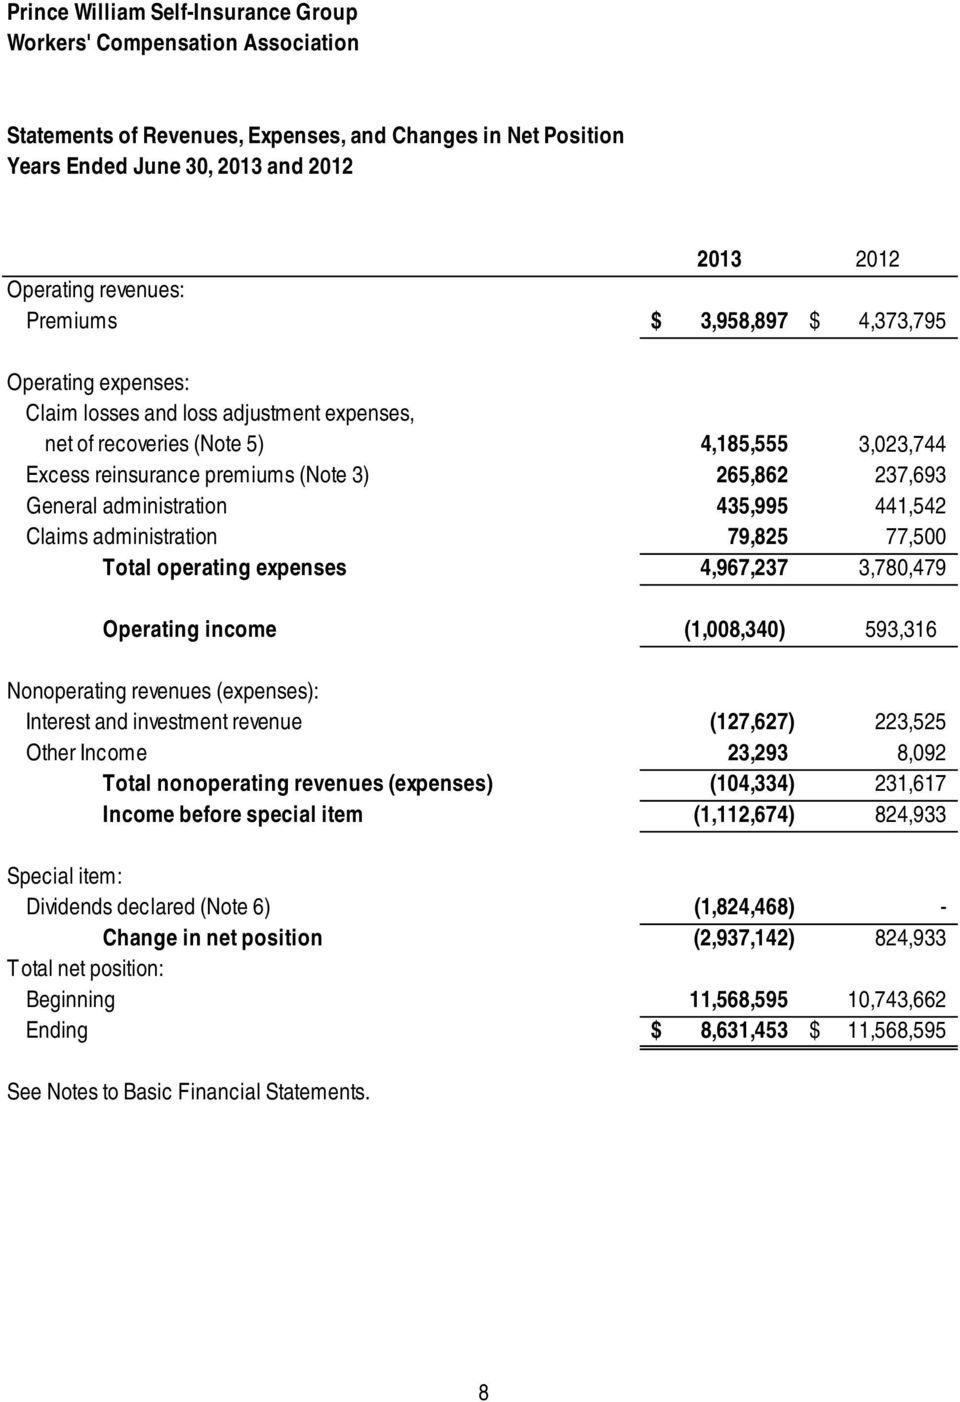 441,542 Claims administration 79,825 77,500 Total operating expenses 4,967,237 3,780,479 Operating income (1,008,340) 593,316 Nonoperating revenues (expenses): Interest and investment revenue